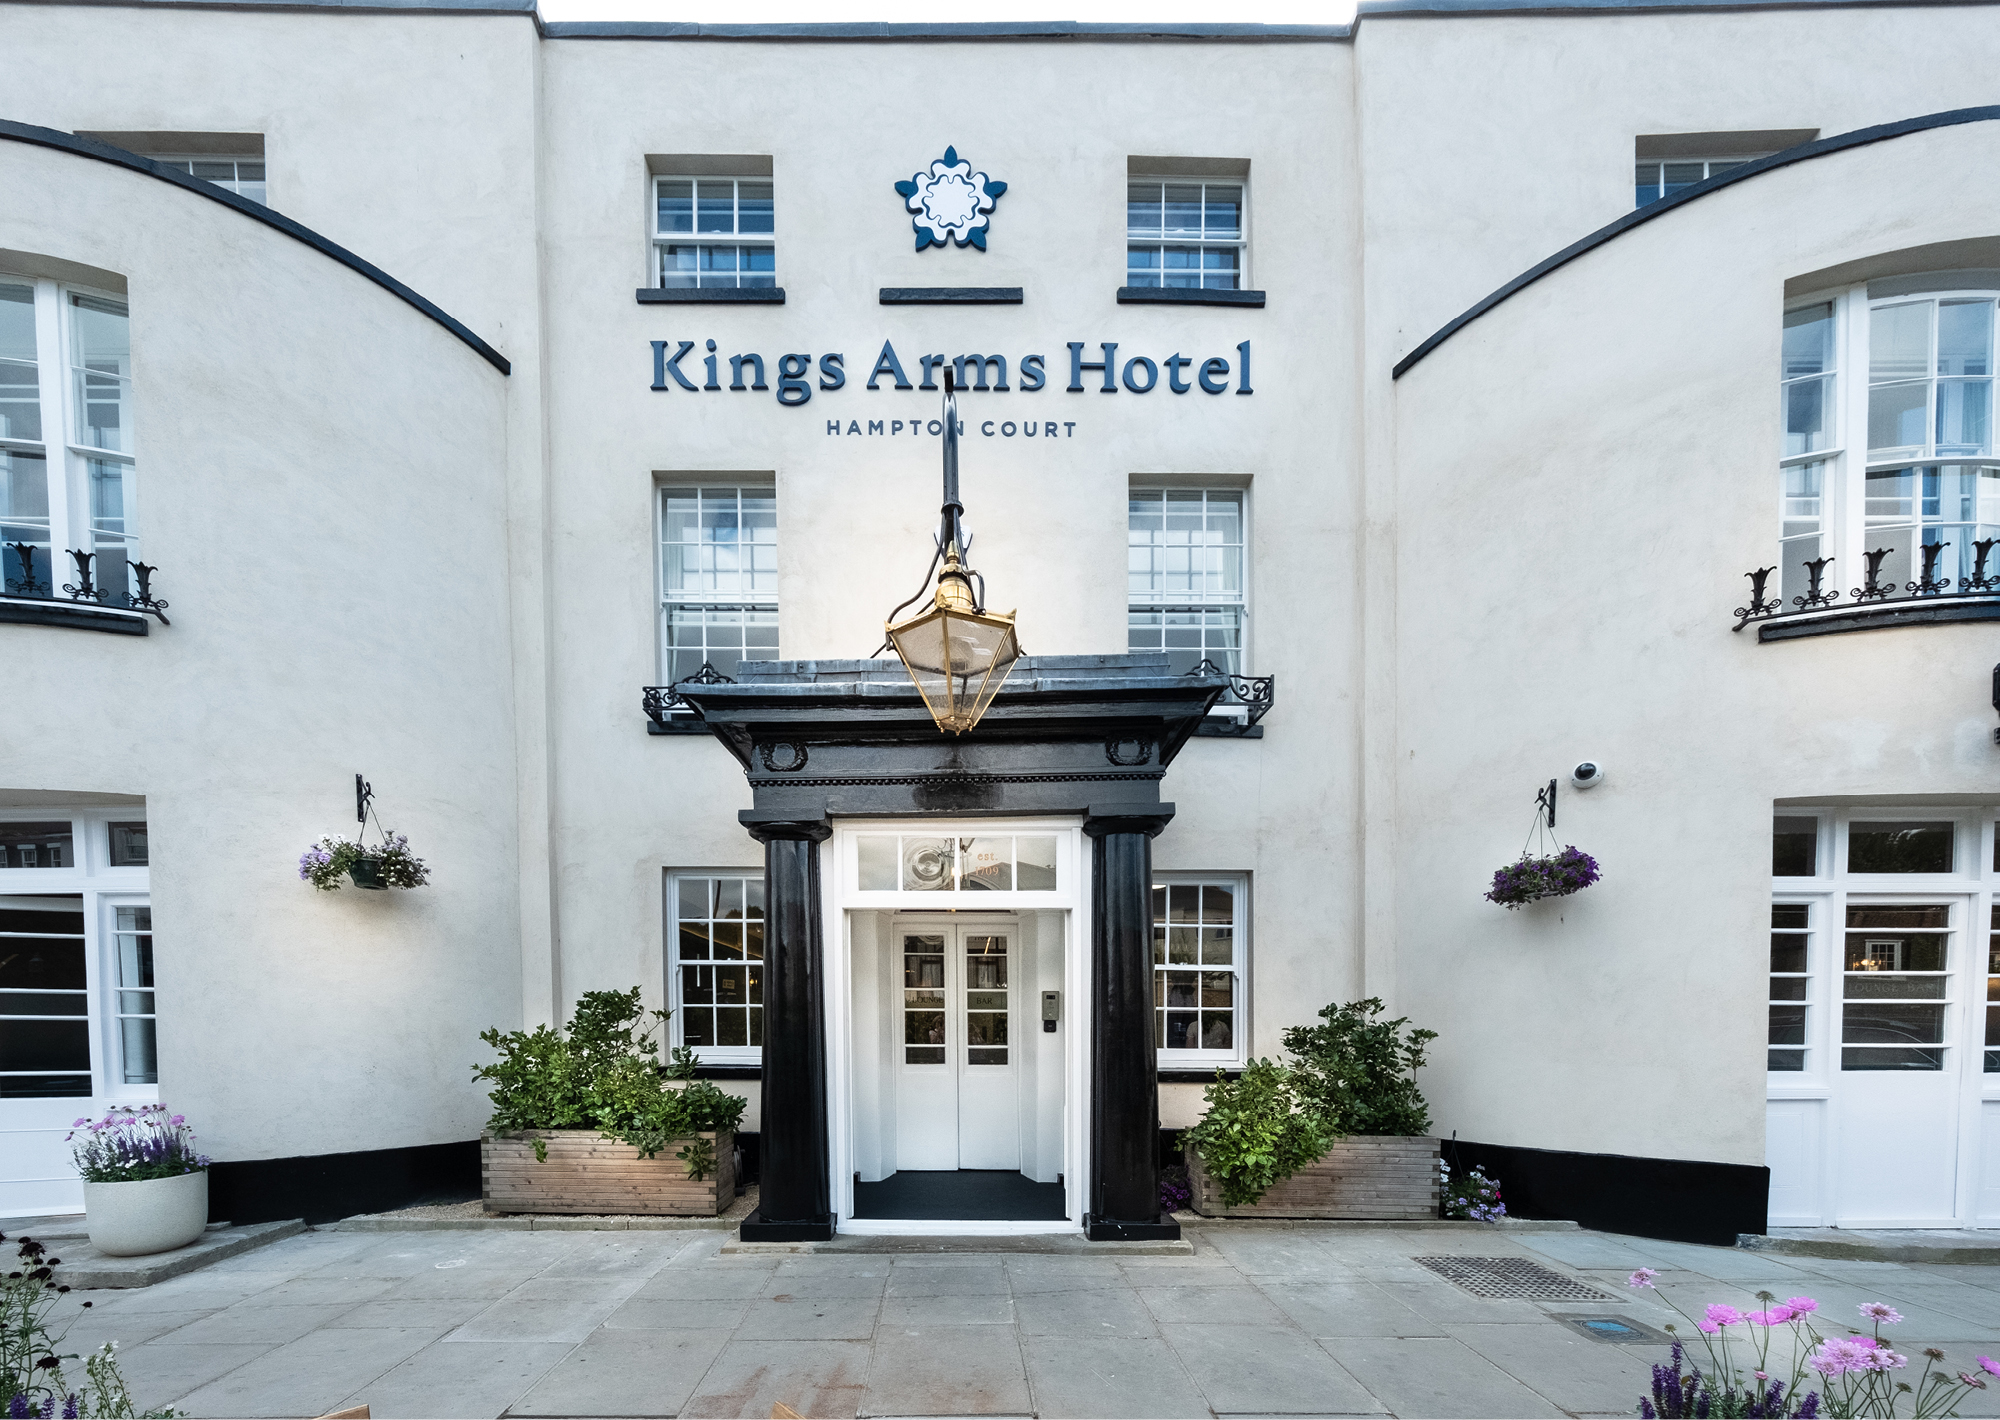 Kings Arms Hotel at Hampton Court